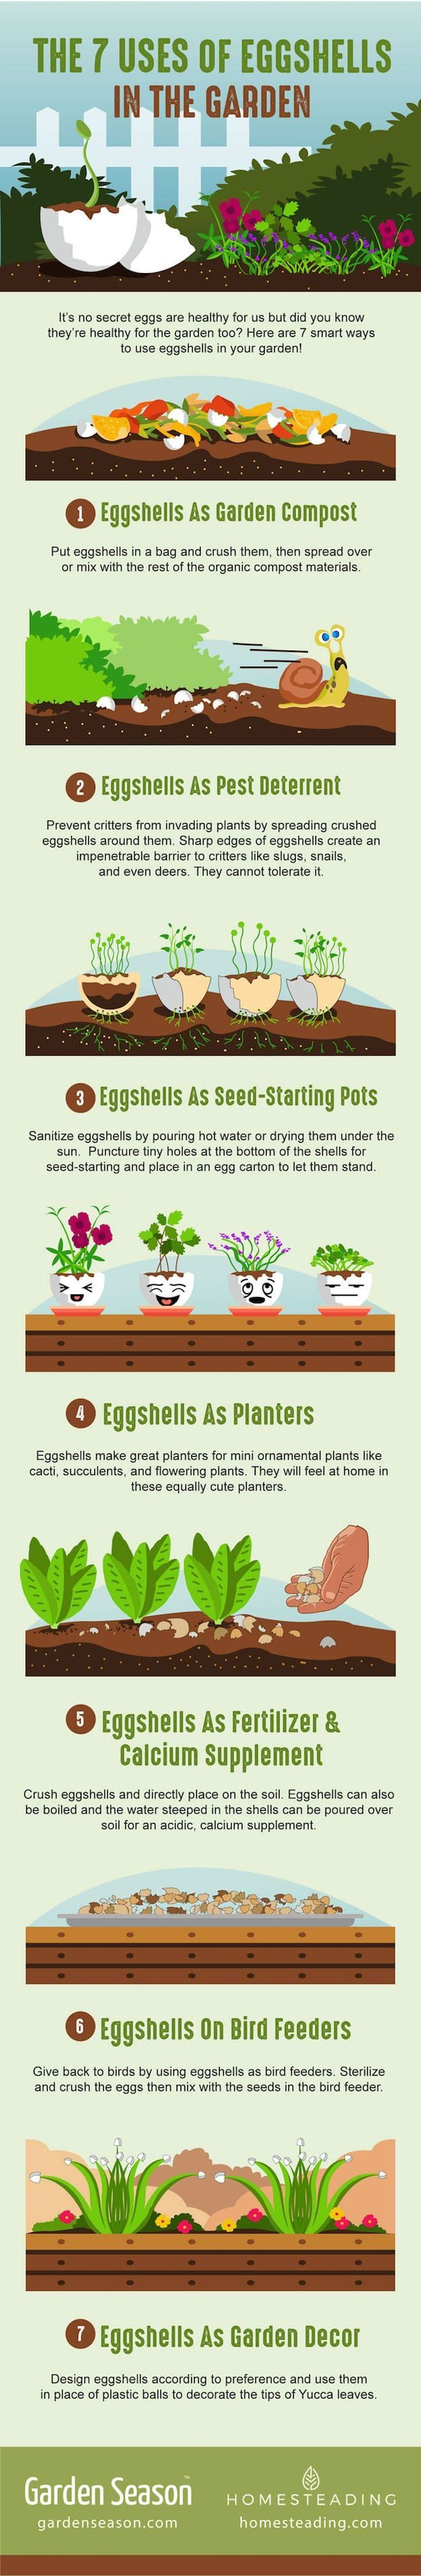 How To Use Eggshells In The Garden   Cost-Cutting Gardening Hacks